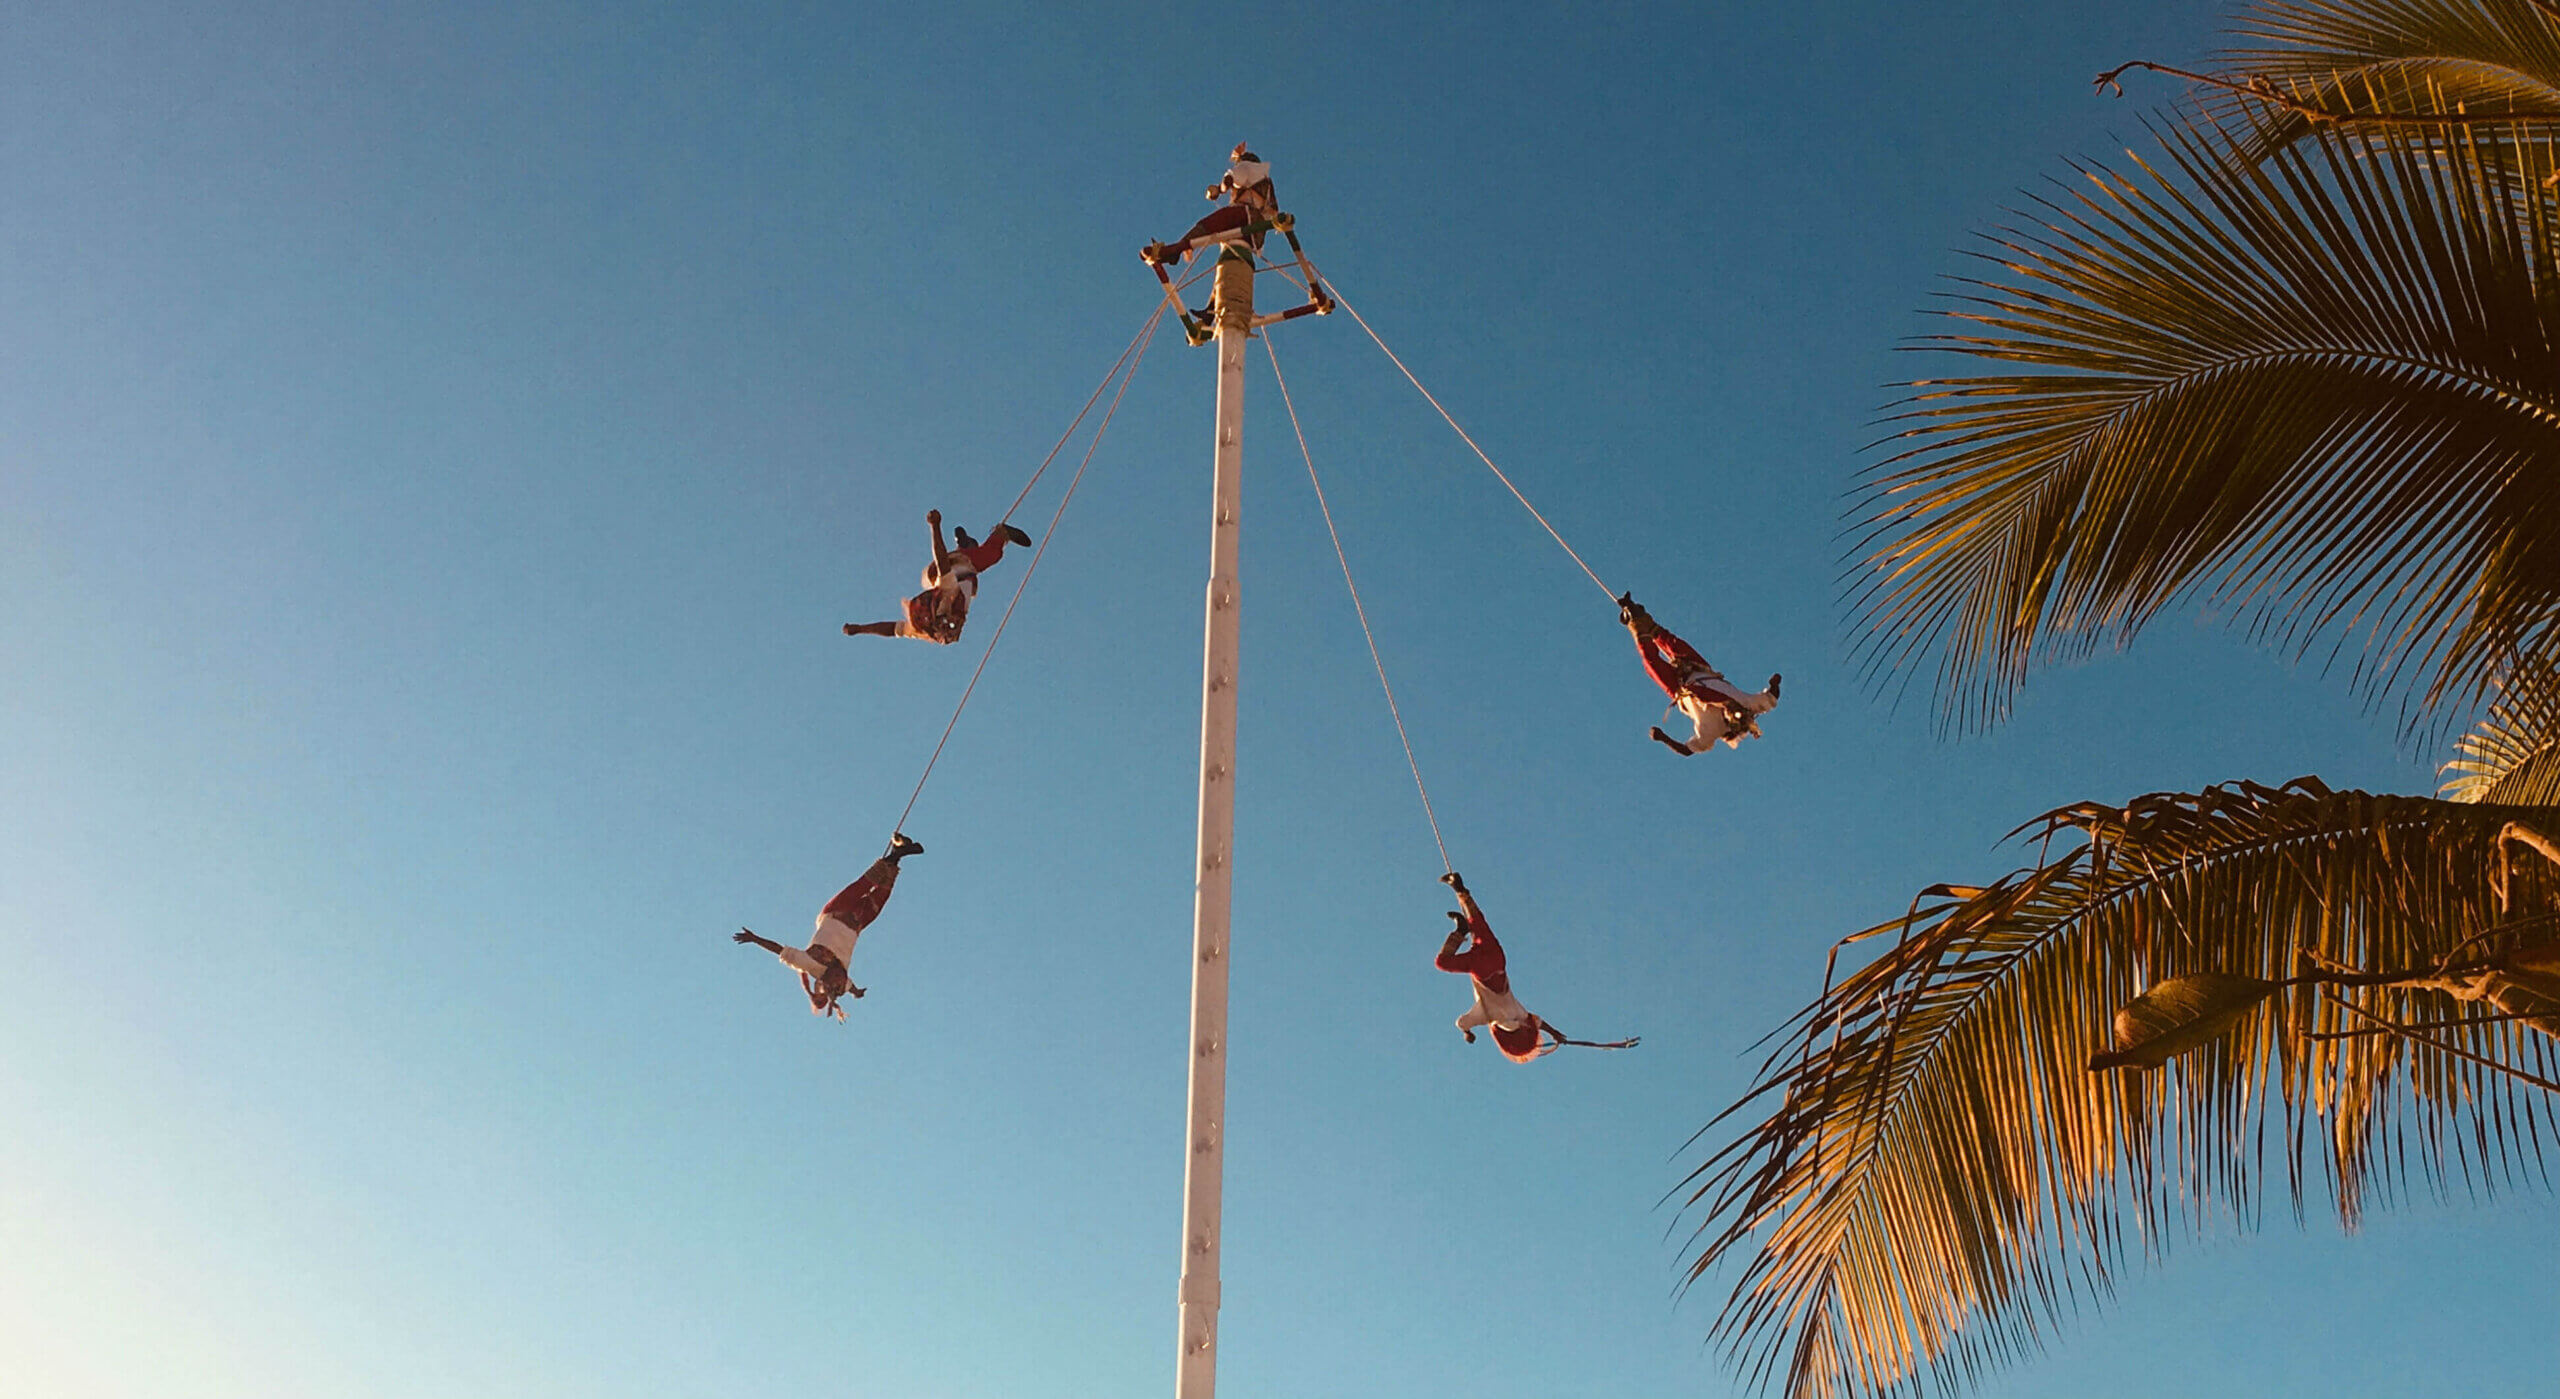 The Danza de los Voladores performing in Puerto Vallarta.